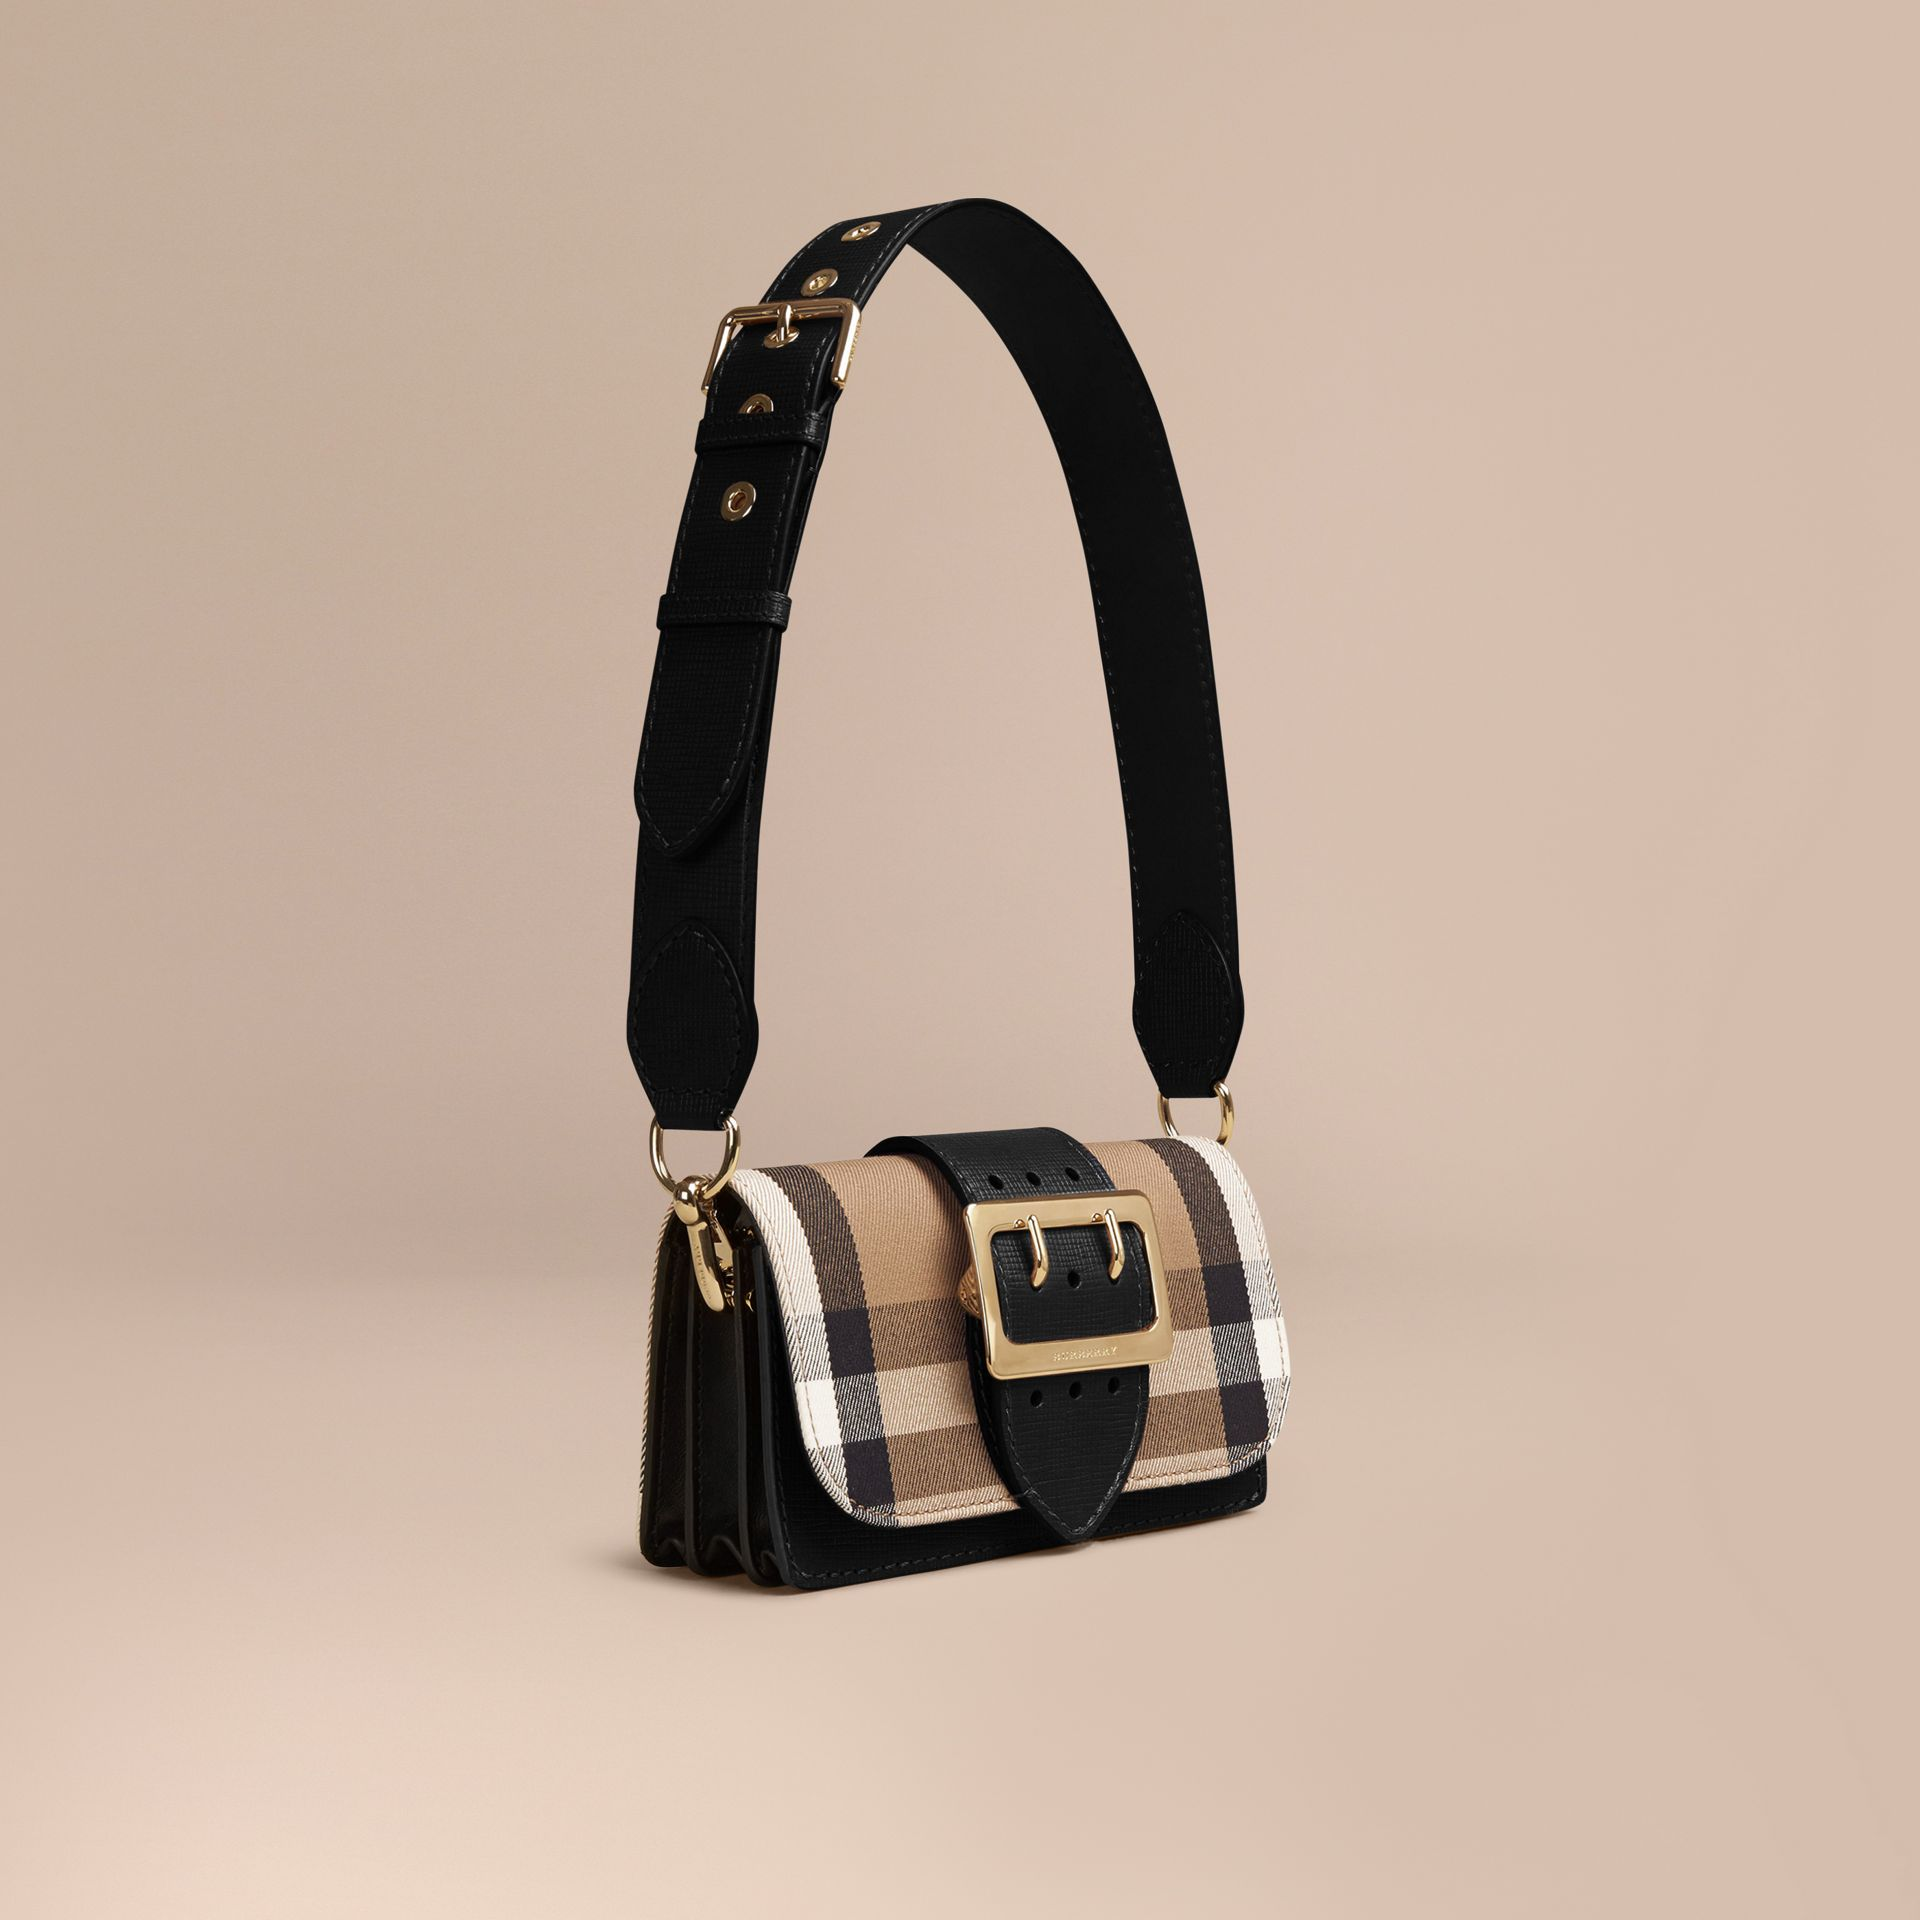 Black The Small Buckle Bag in House Check and Leather Black - gallery image 1